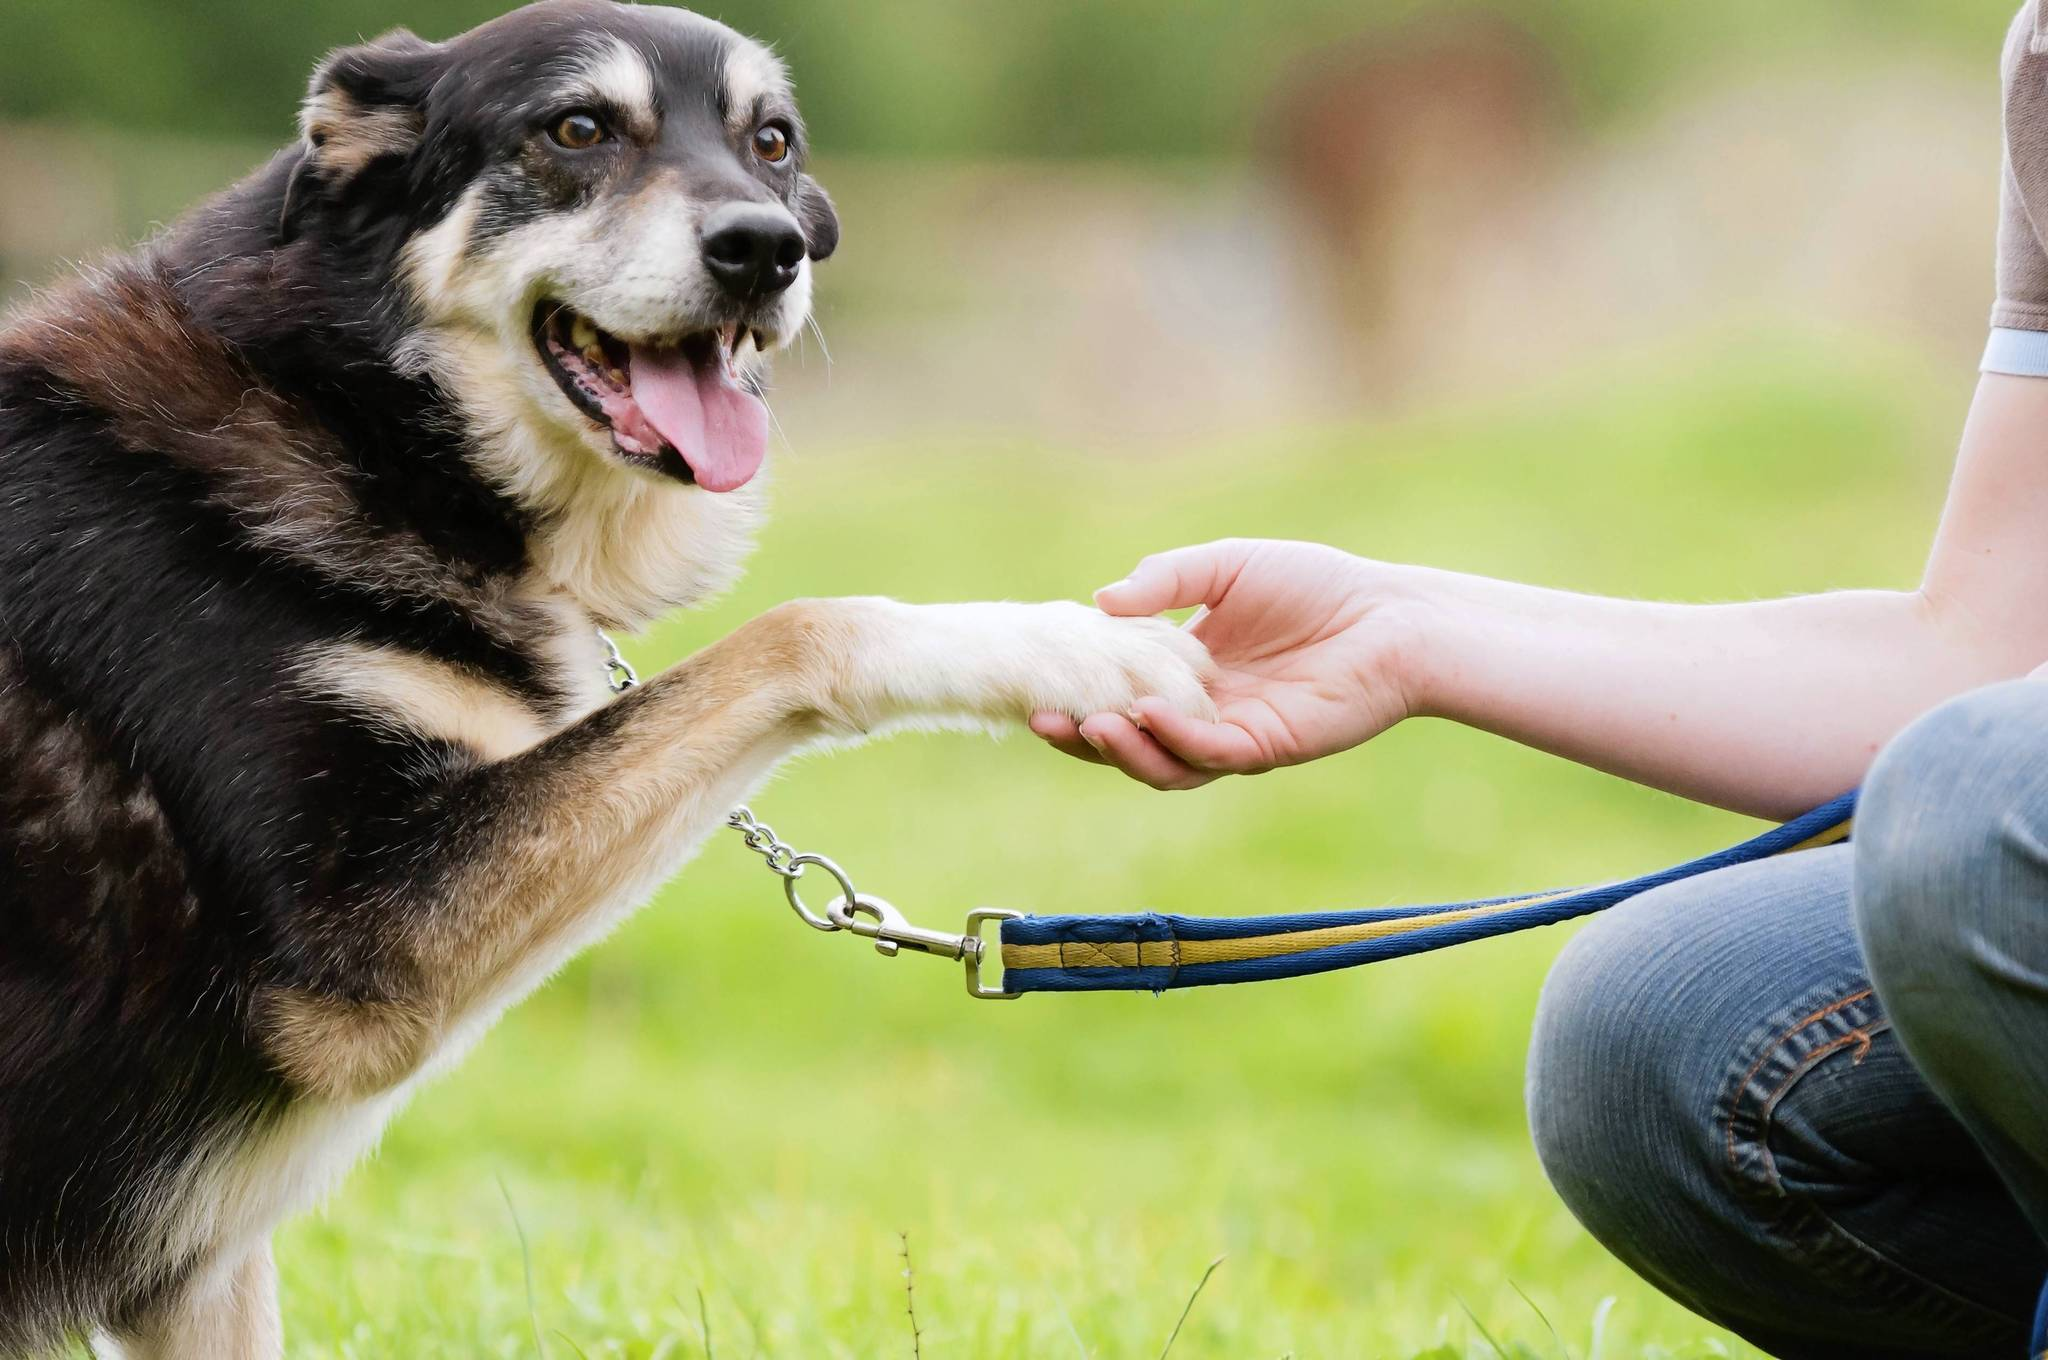 Life Skill #618: Teaching a dog how to shake hands